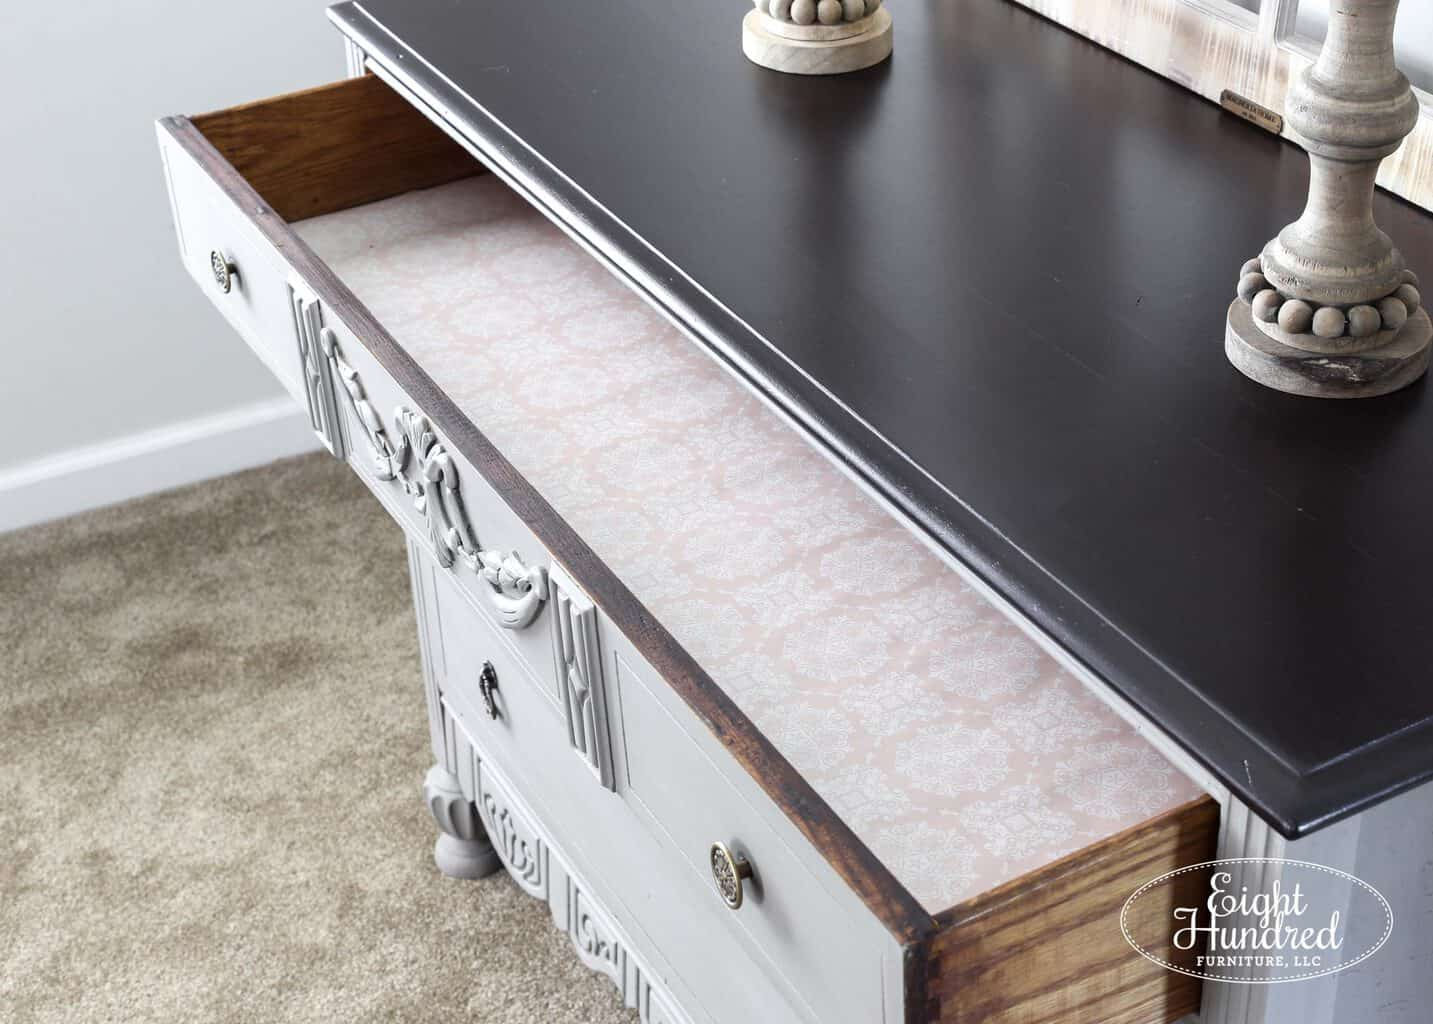 Lined drawers on French Linen Chalk Painted dresser